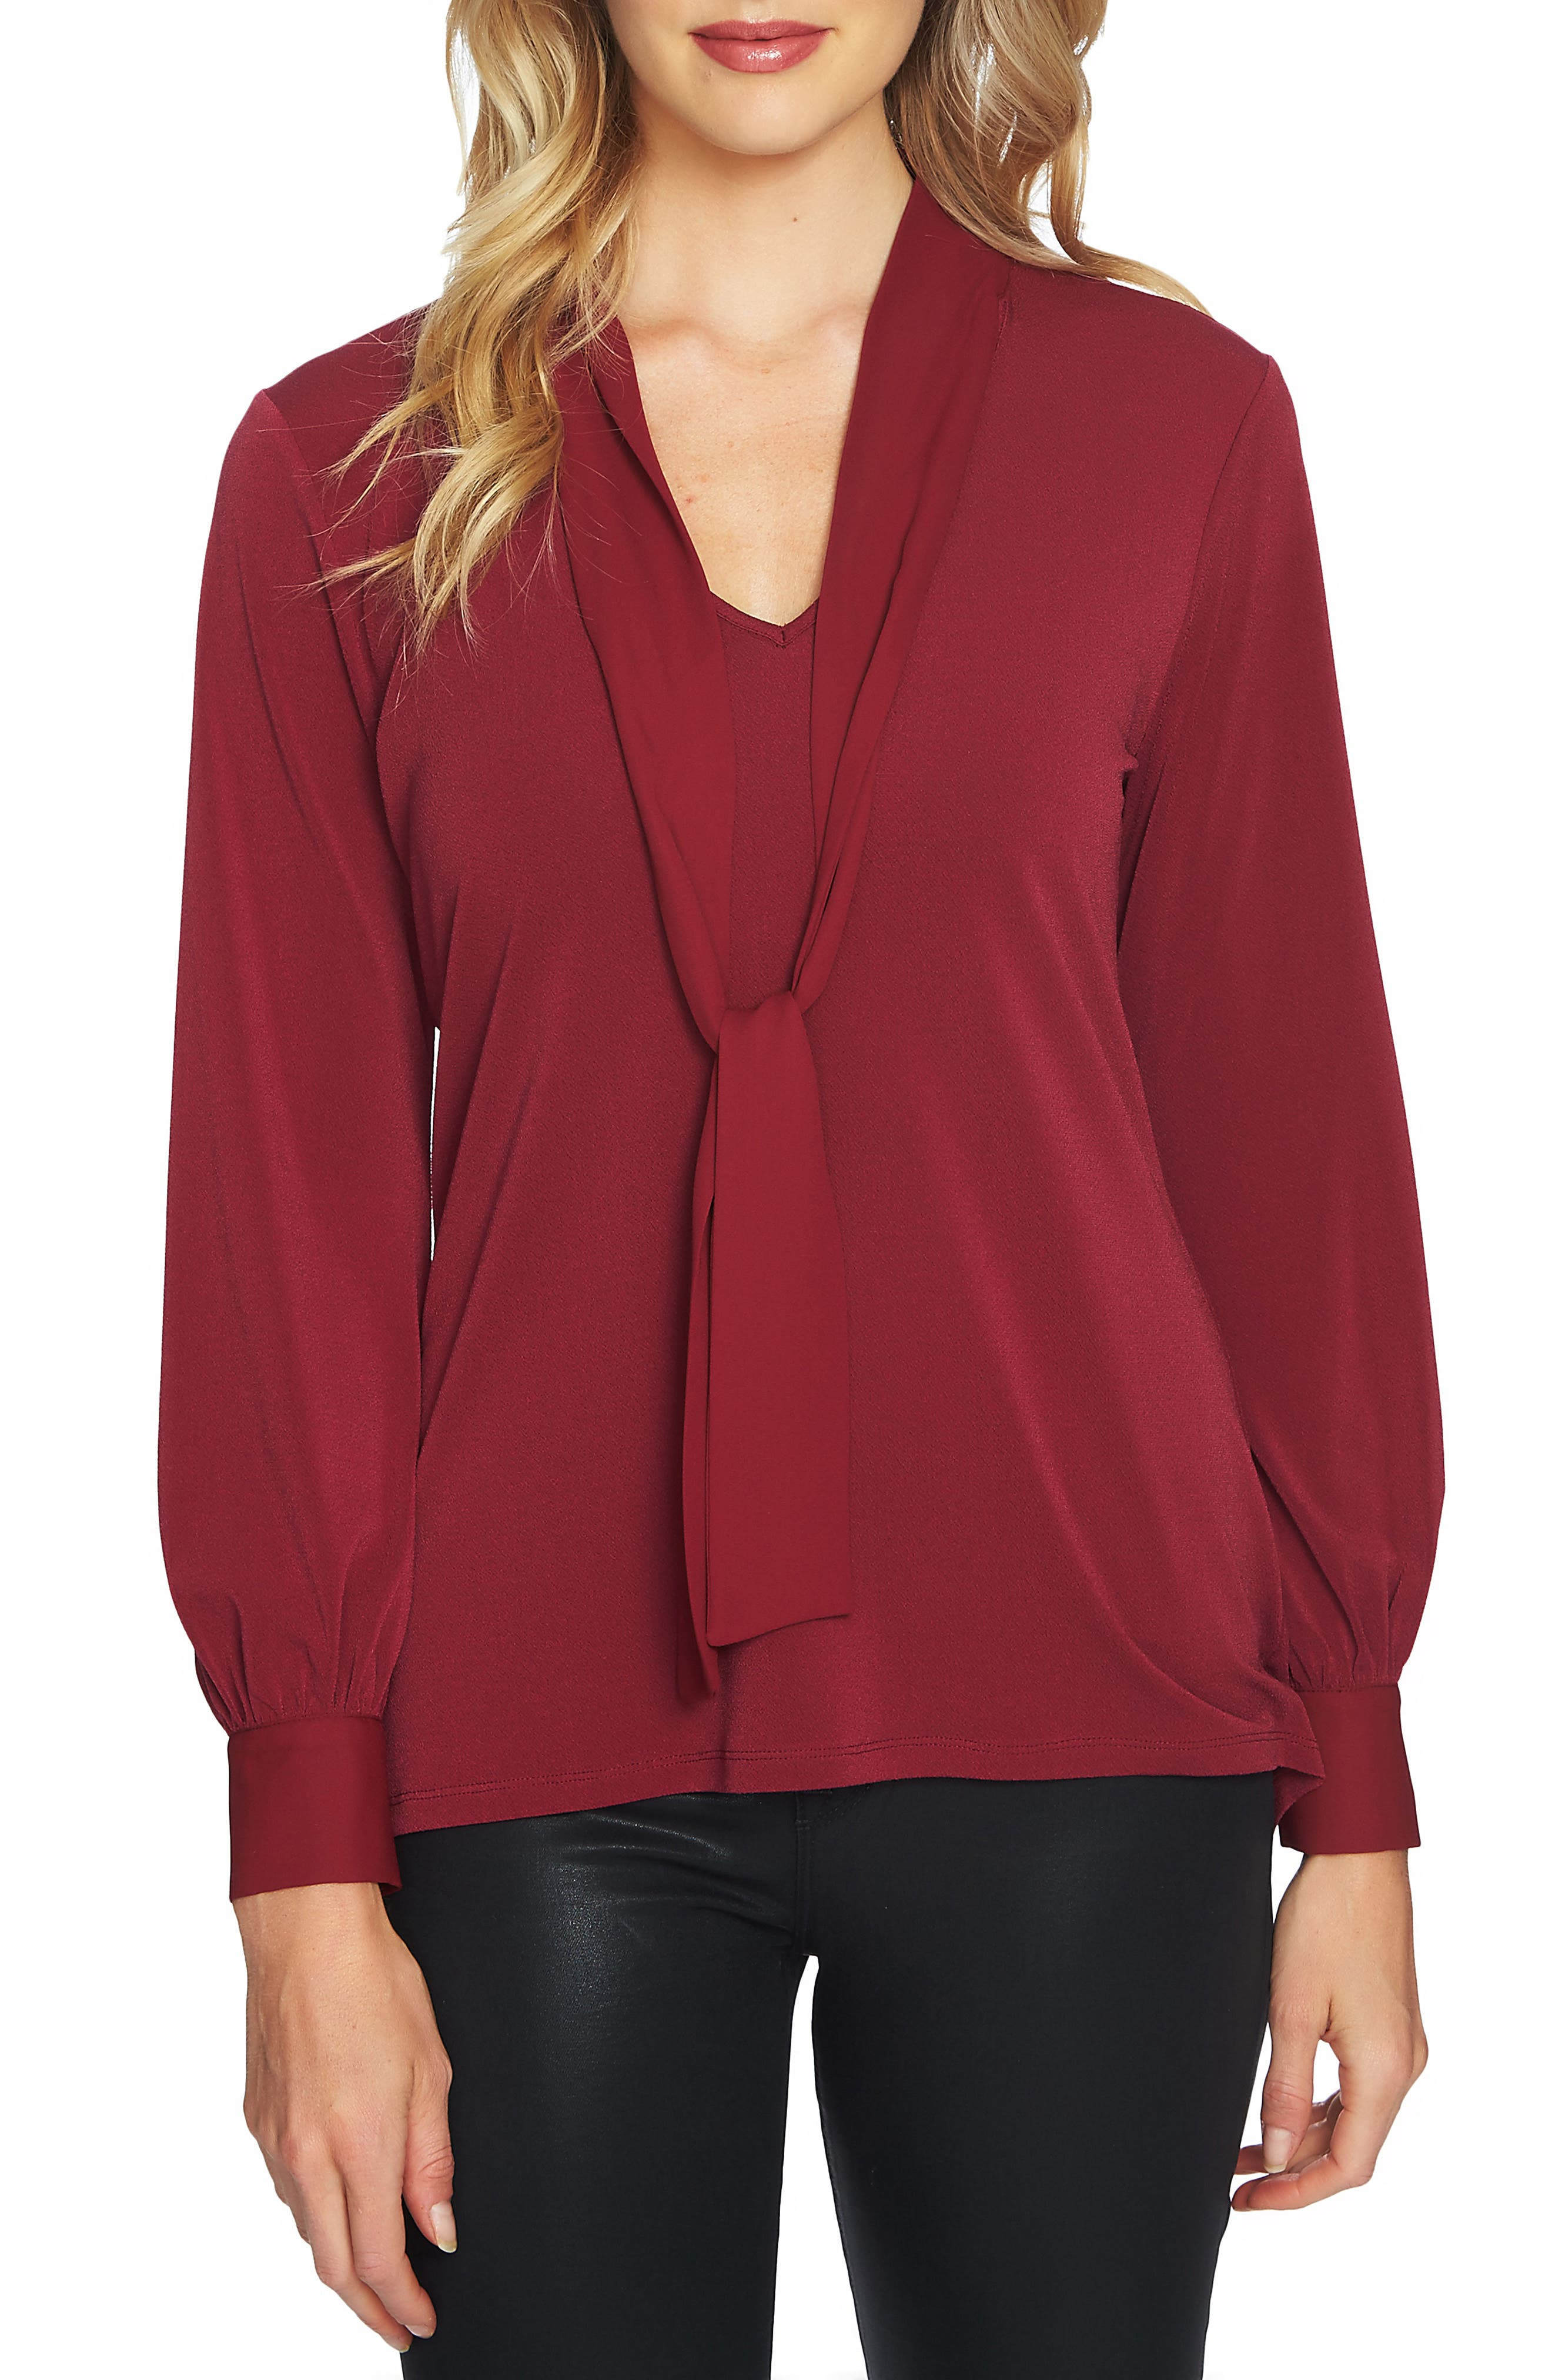 Alternate Image 1 Selected - CeCe Chiffon Tie Neck Knit Top